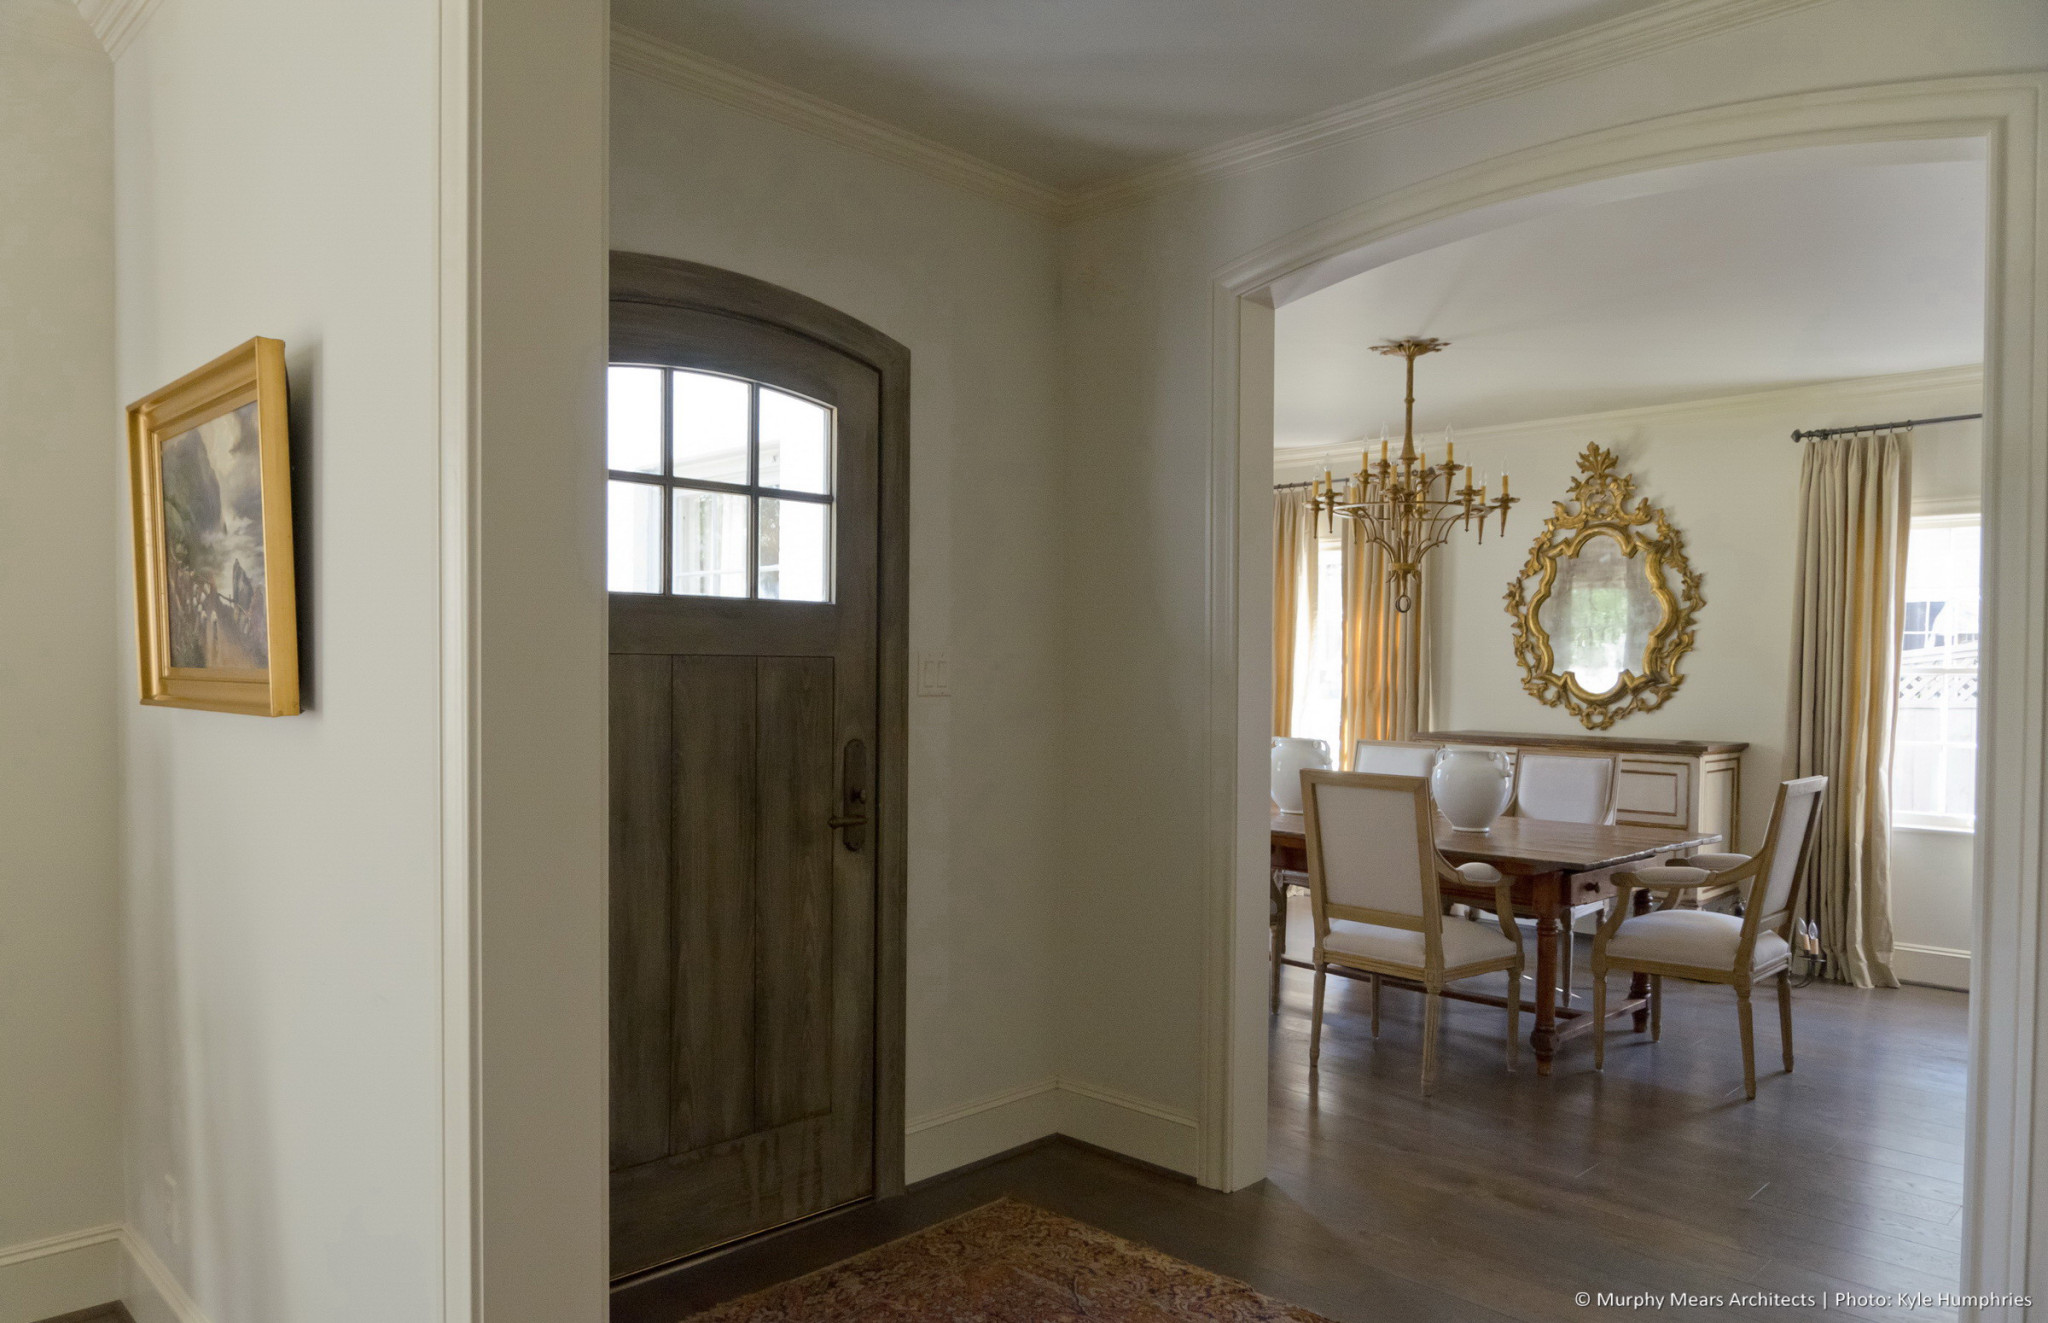 Pemberton Residence - Renovated front entry hall with dining room beyond.